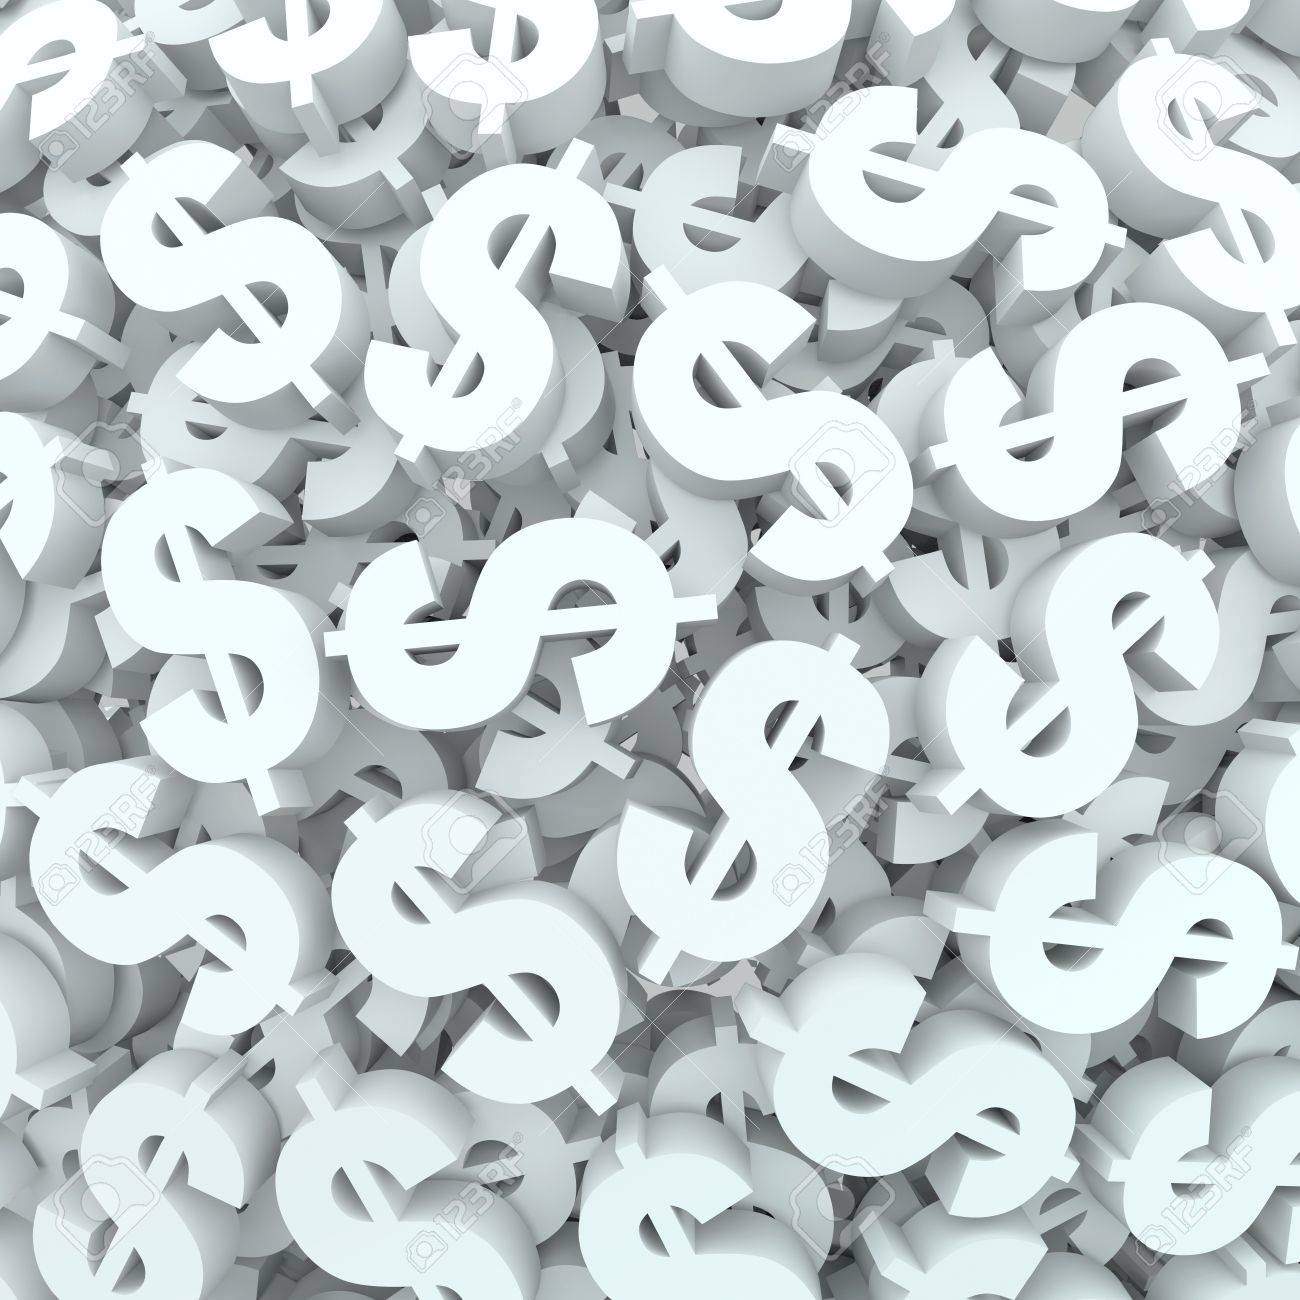 a background of dollar signs and symbols to represent and illustrate